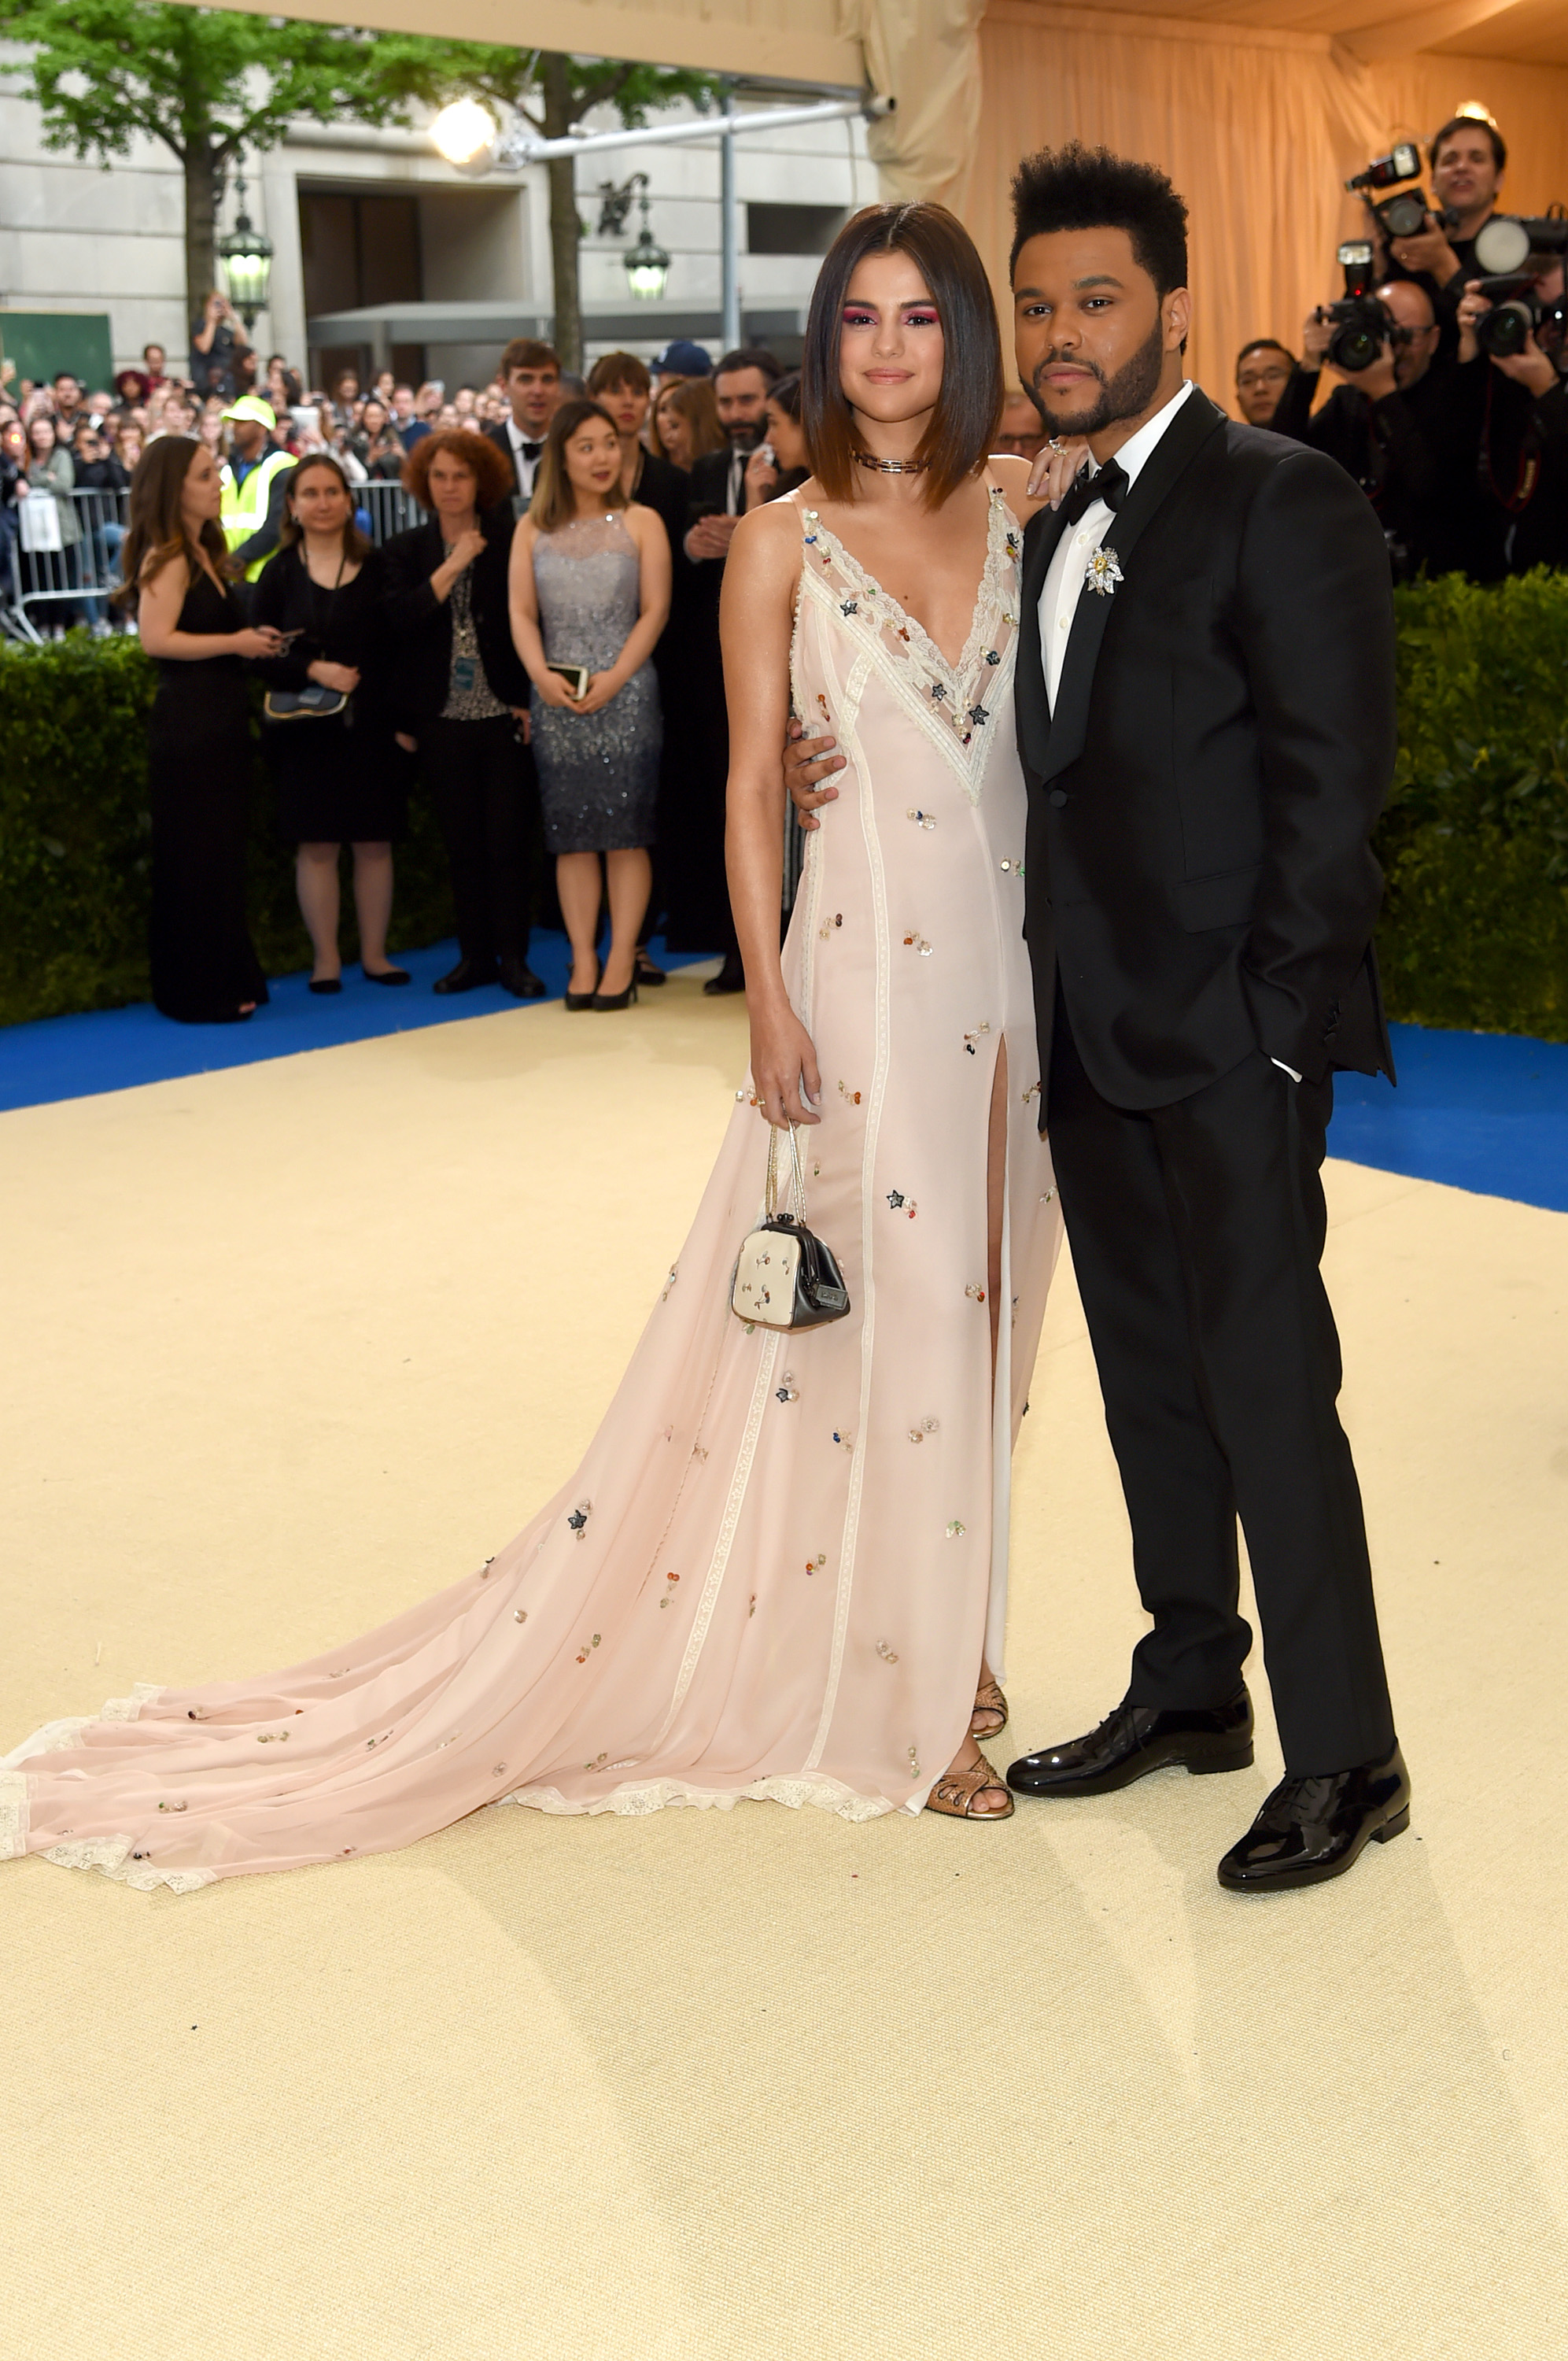 <p>When you're an A-list couple and you want the world to know how very stylish you are, the Met Gala is the place to be.</p> <p>Pop stars Selena Gomez and boyfriend The Weeknd (Abel Tesfaye to his mother) know that of course and the super cool couple took the opportunity to showcase both their outfits (chic) and their love (legit). </p> <p>They weren't the only dashing duo to make an entrance at the 2017 Met Gala, Rei Kawakubo/Comme des Garcons: Art Of The In-Between, however. In fact, this was seemingly the year of the red carpet couple with too many to count. Click through to see our pick of the most stylish.</p>